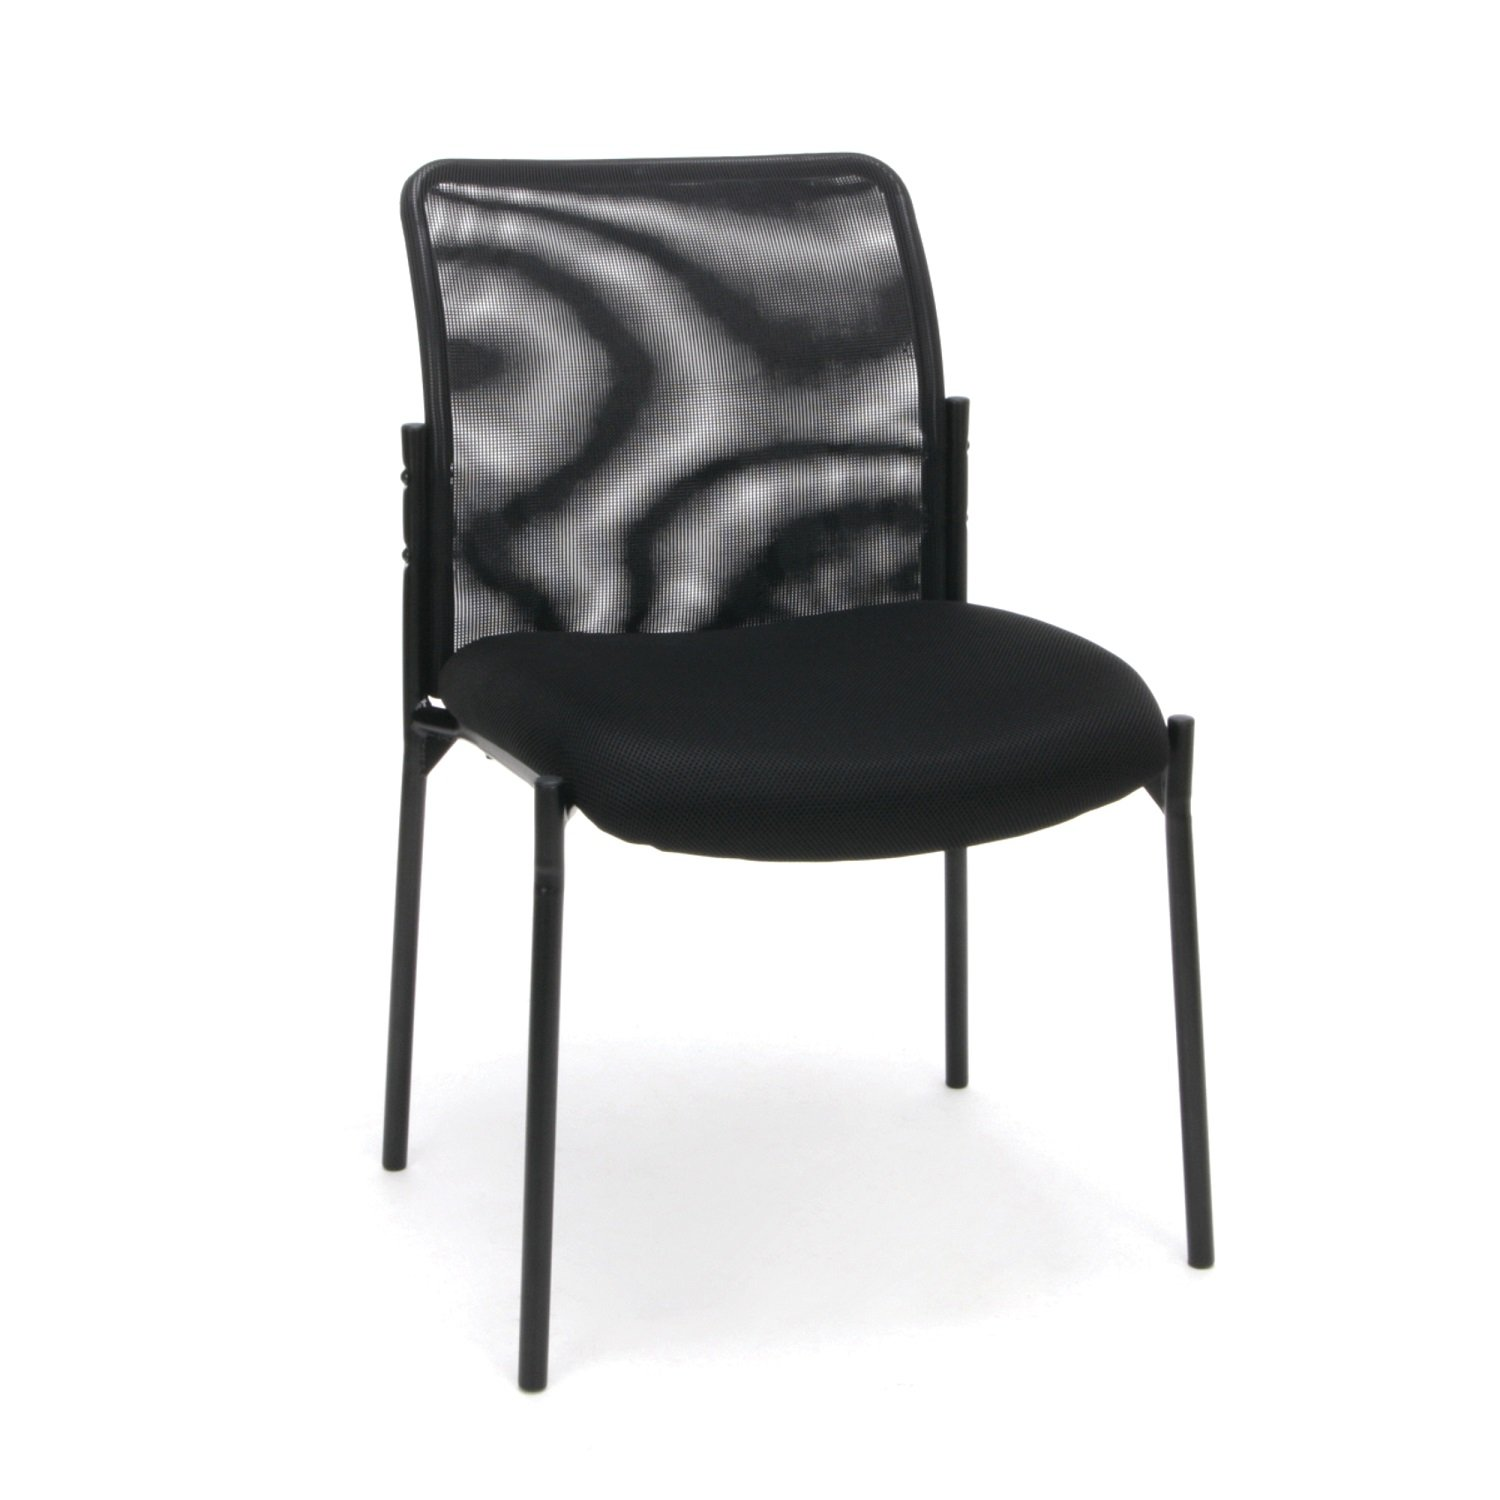 Essentials Mesh Upholstered Stacking Armless Guest/Reception Chair - Modern Stackable Office Chair (ESS-8000) by OFM